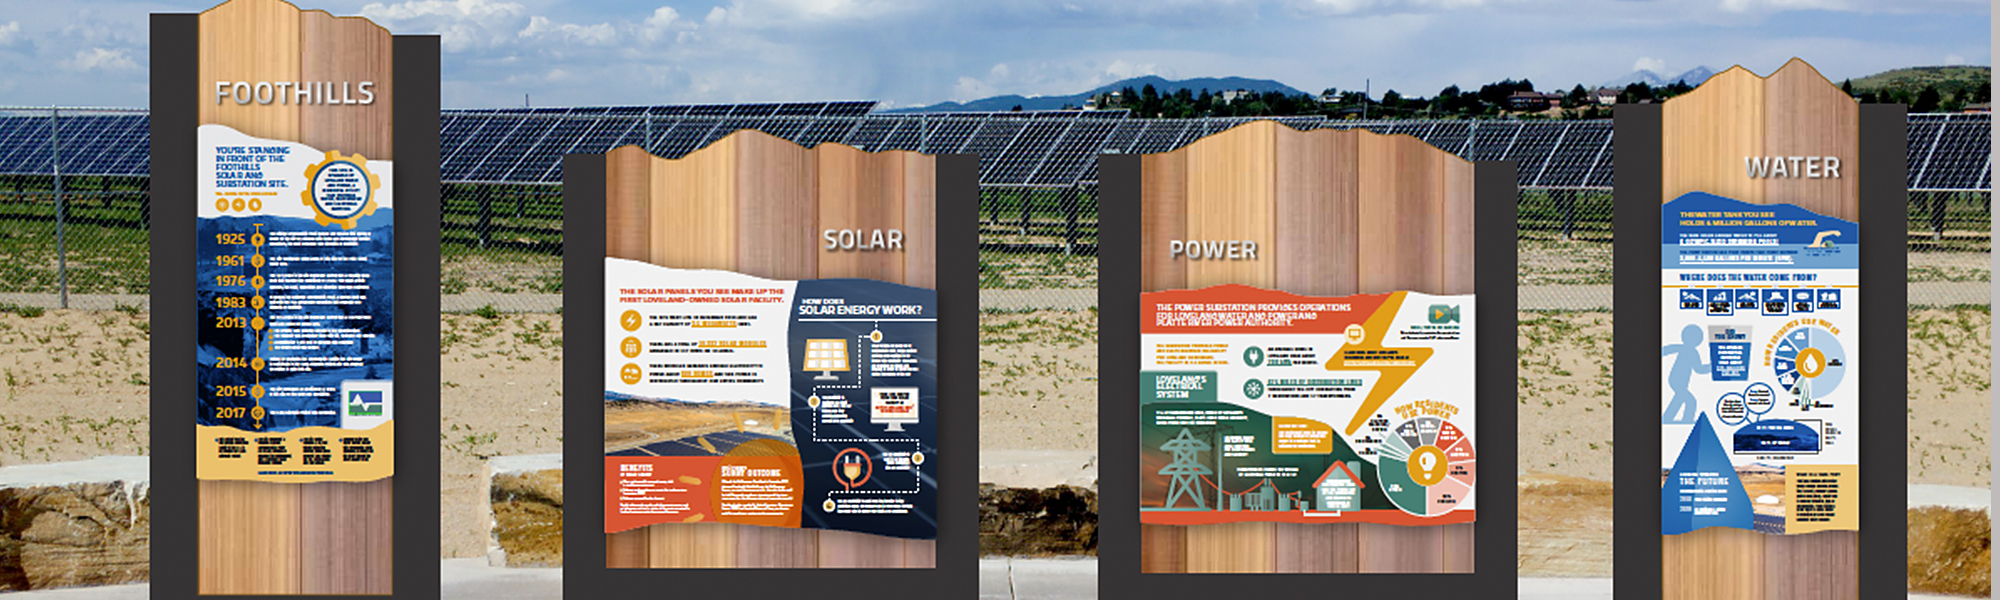 custom park signs - power and water